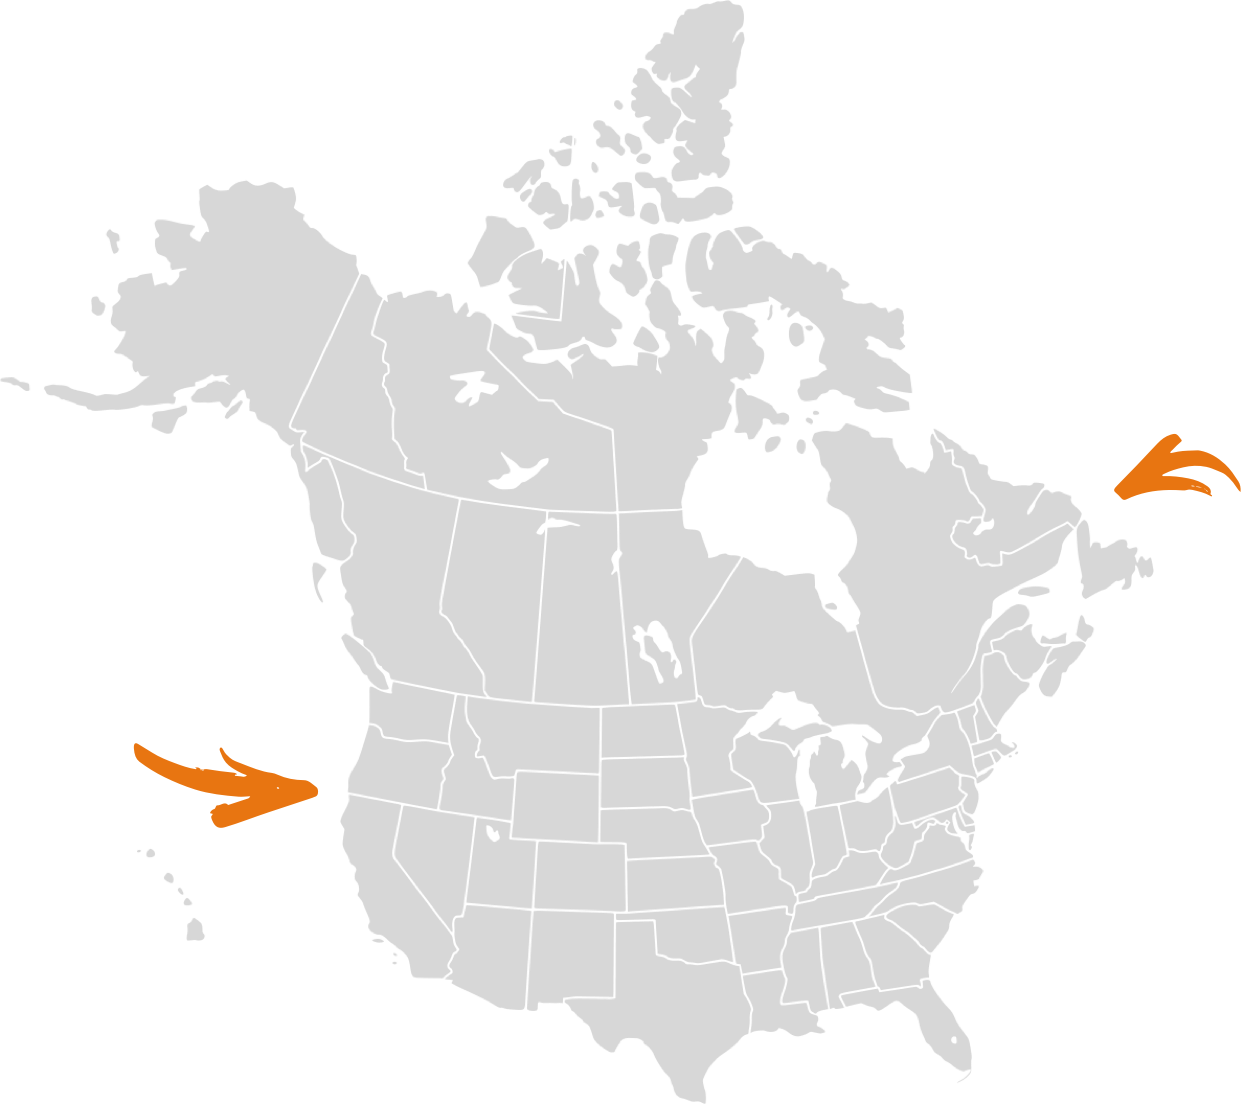 Stylized map of the United States and Canada